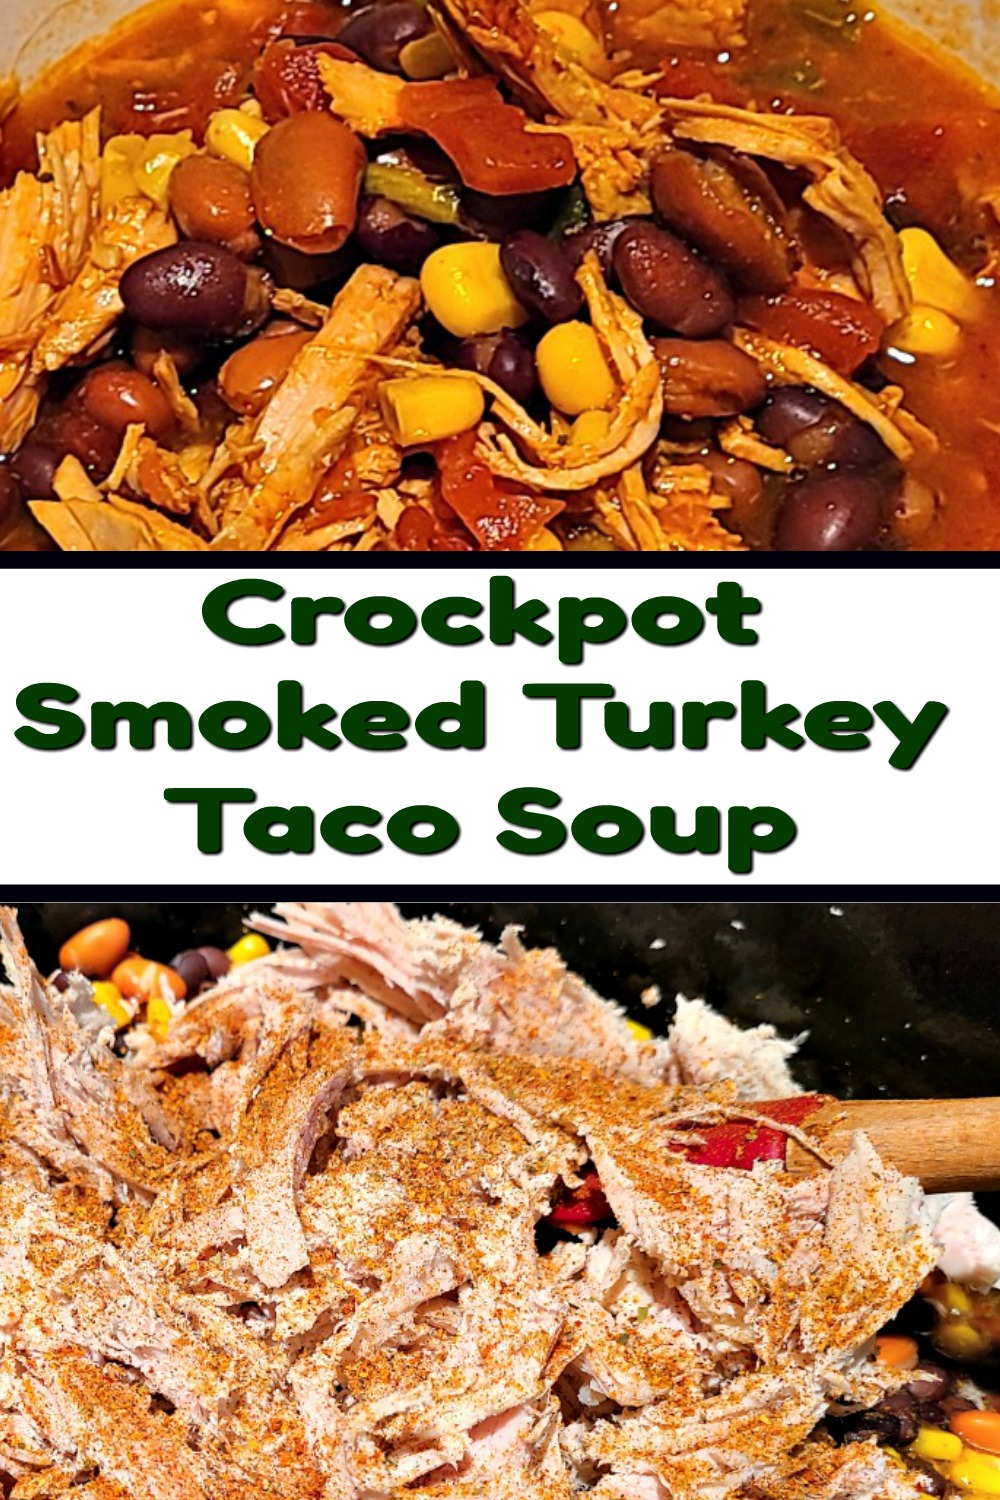 This Crockpot Smoked Turkey Taco Soup Recipe is perfect for leftover holiday turkey! Change the ingredients to the soup how you want and spice it up too! The smoked turkey adds amazing flavor to soup as well!